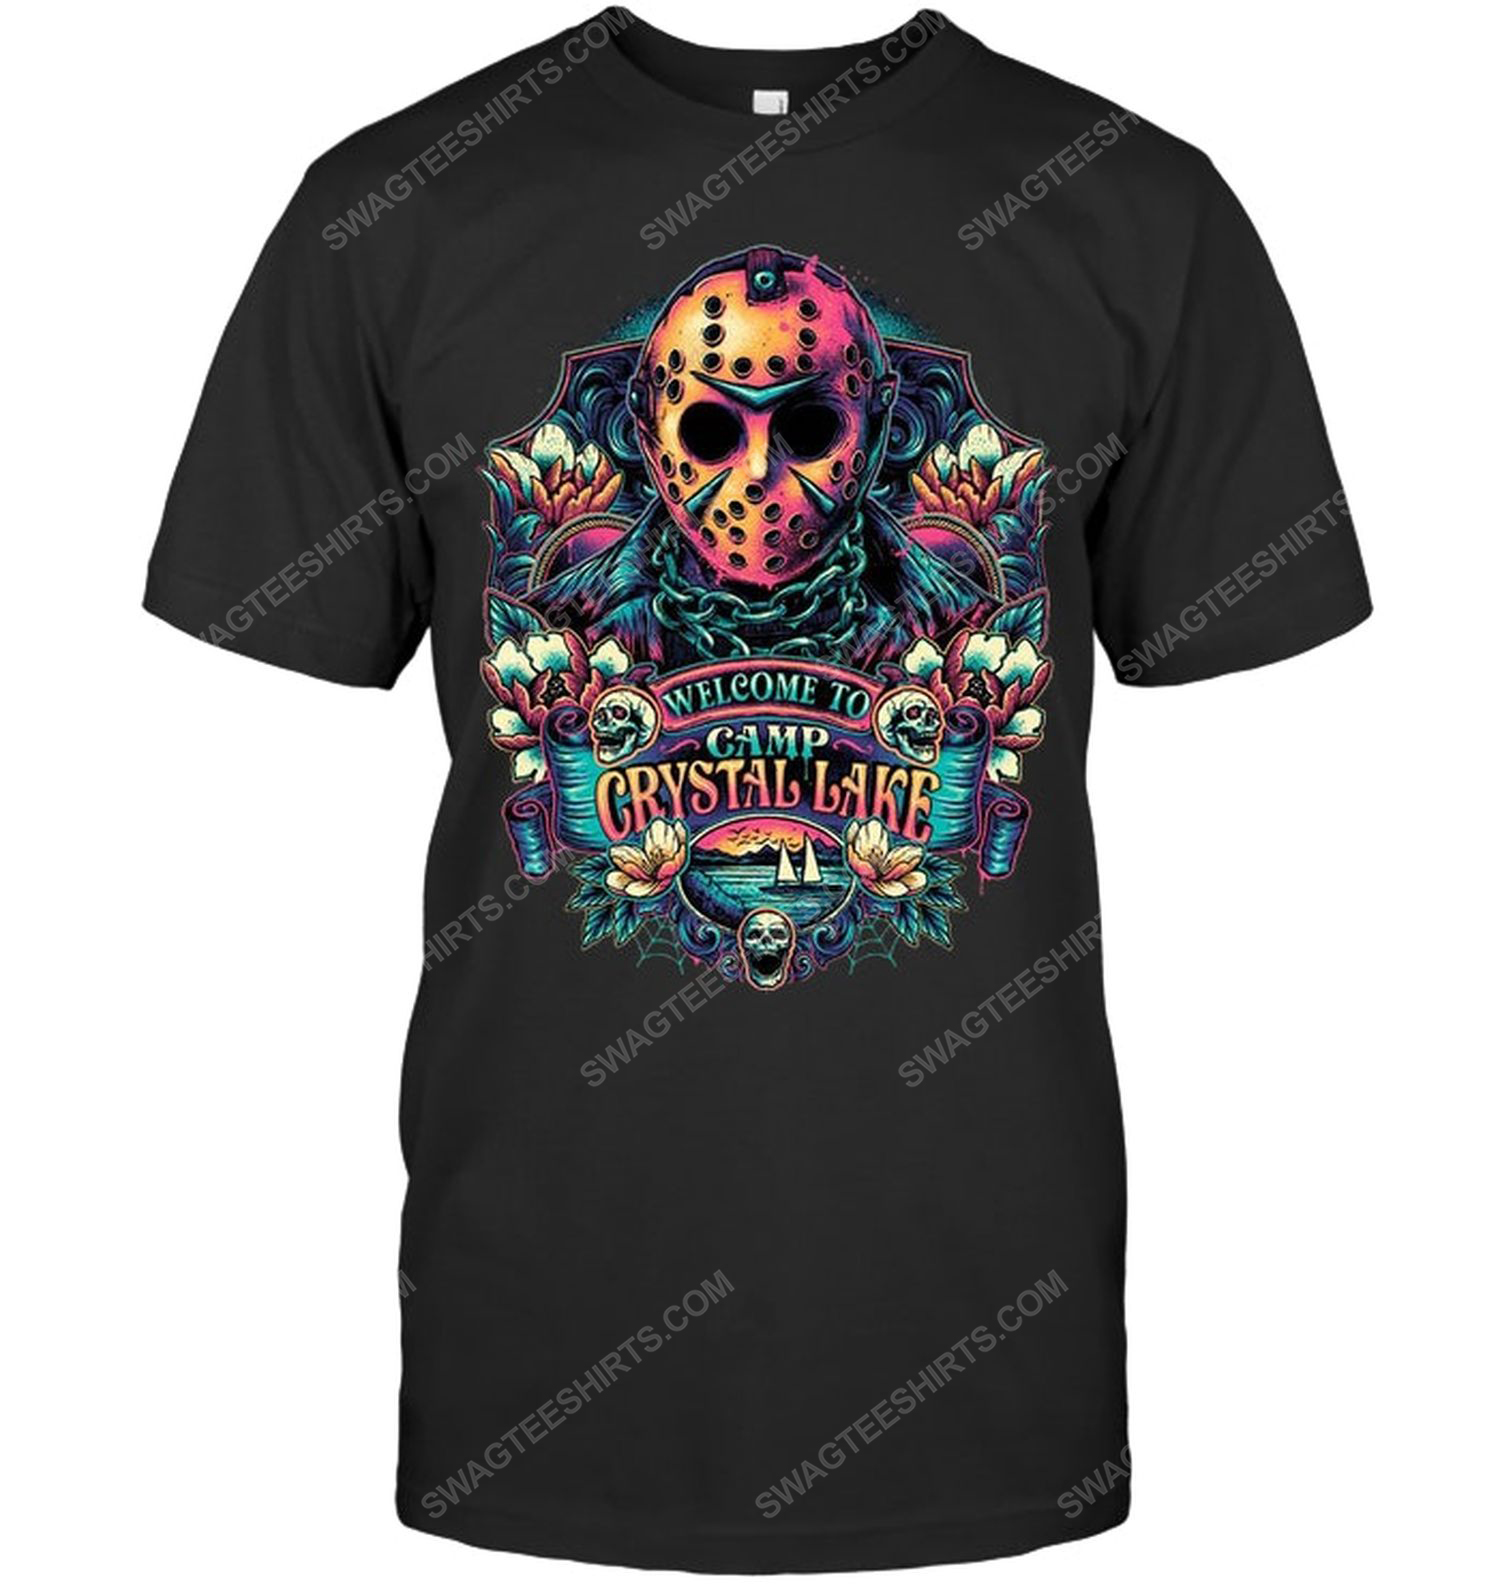 Welcome to camp crystal lake friday the 13th shirt 1